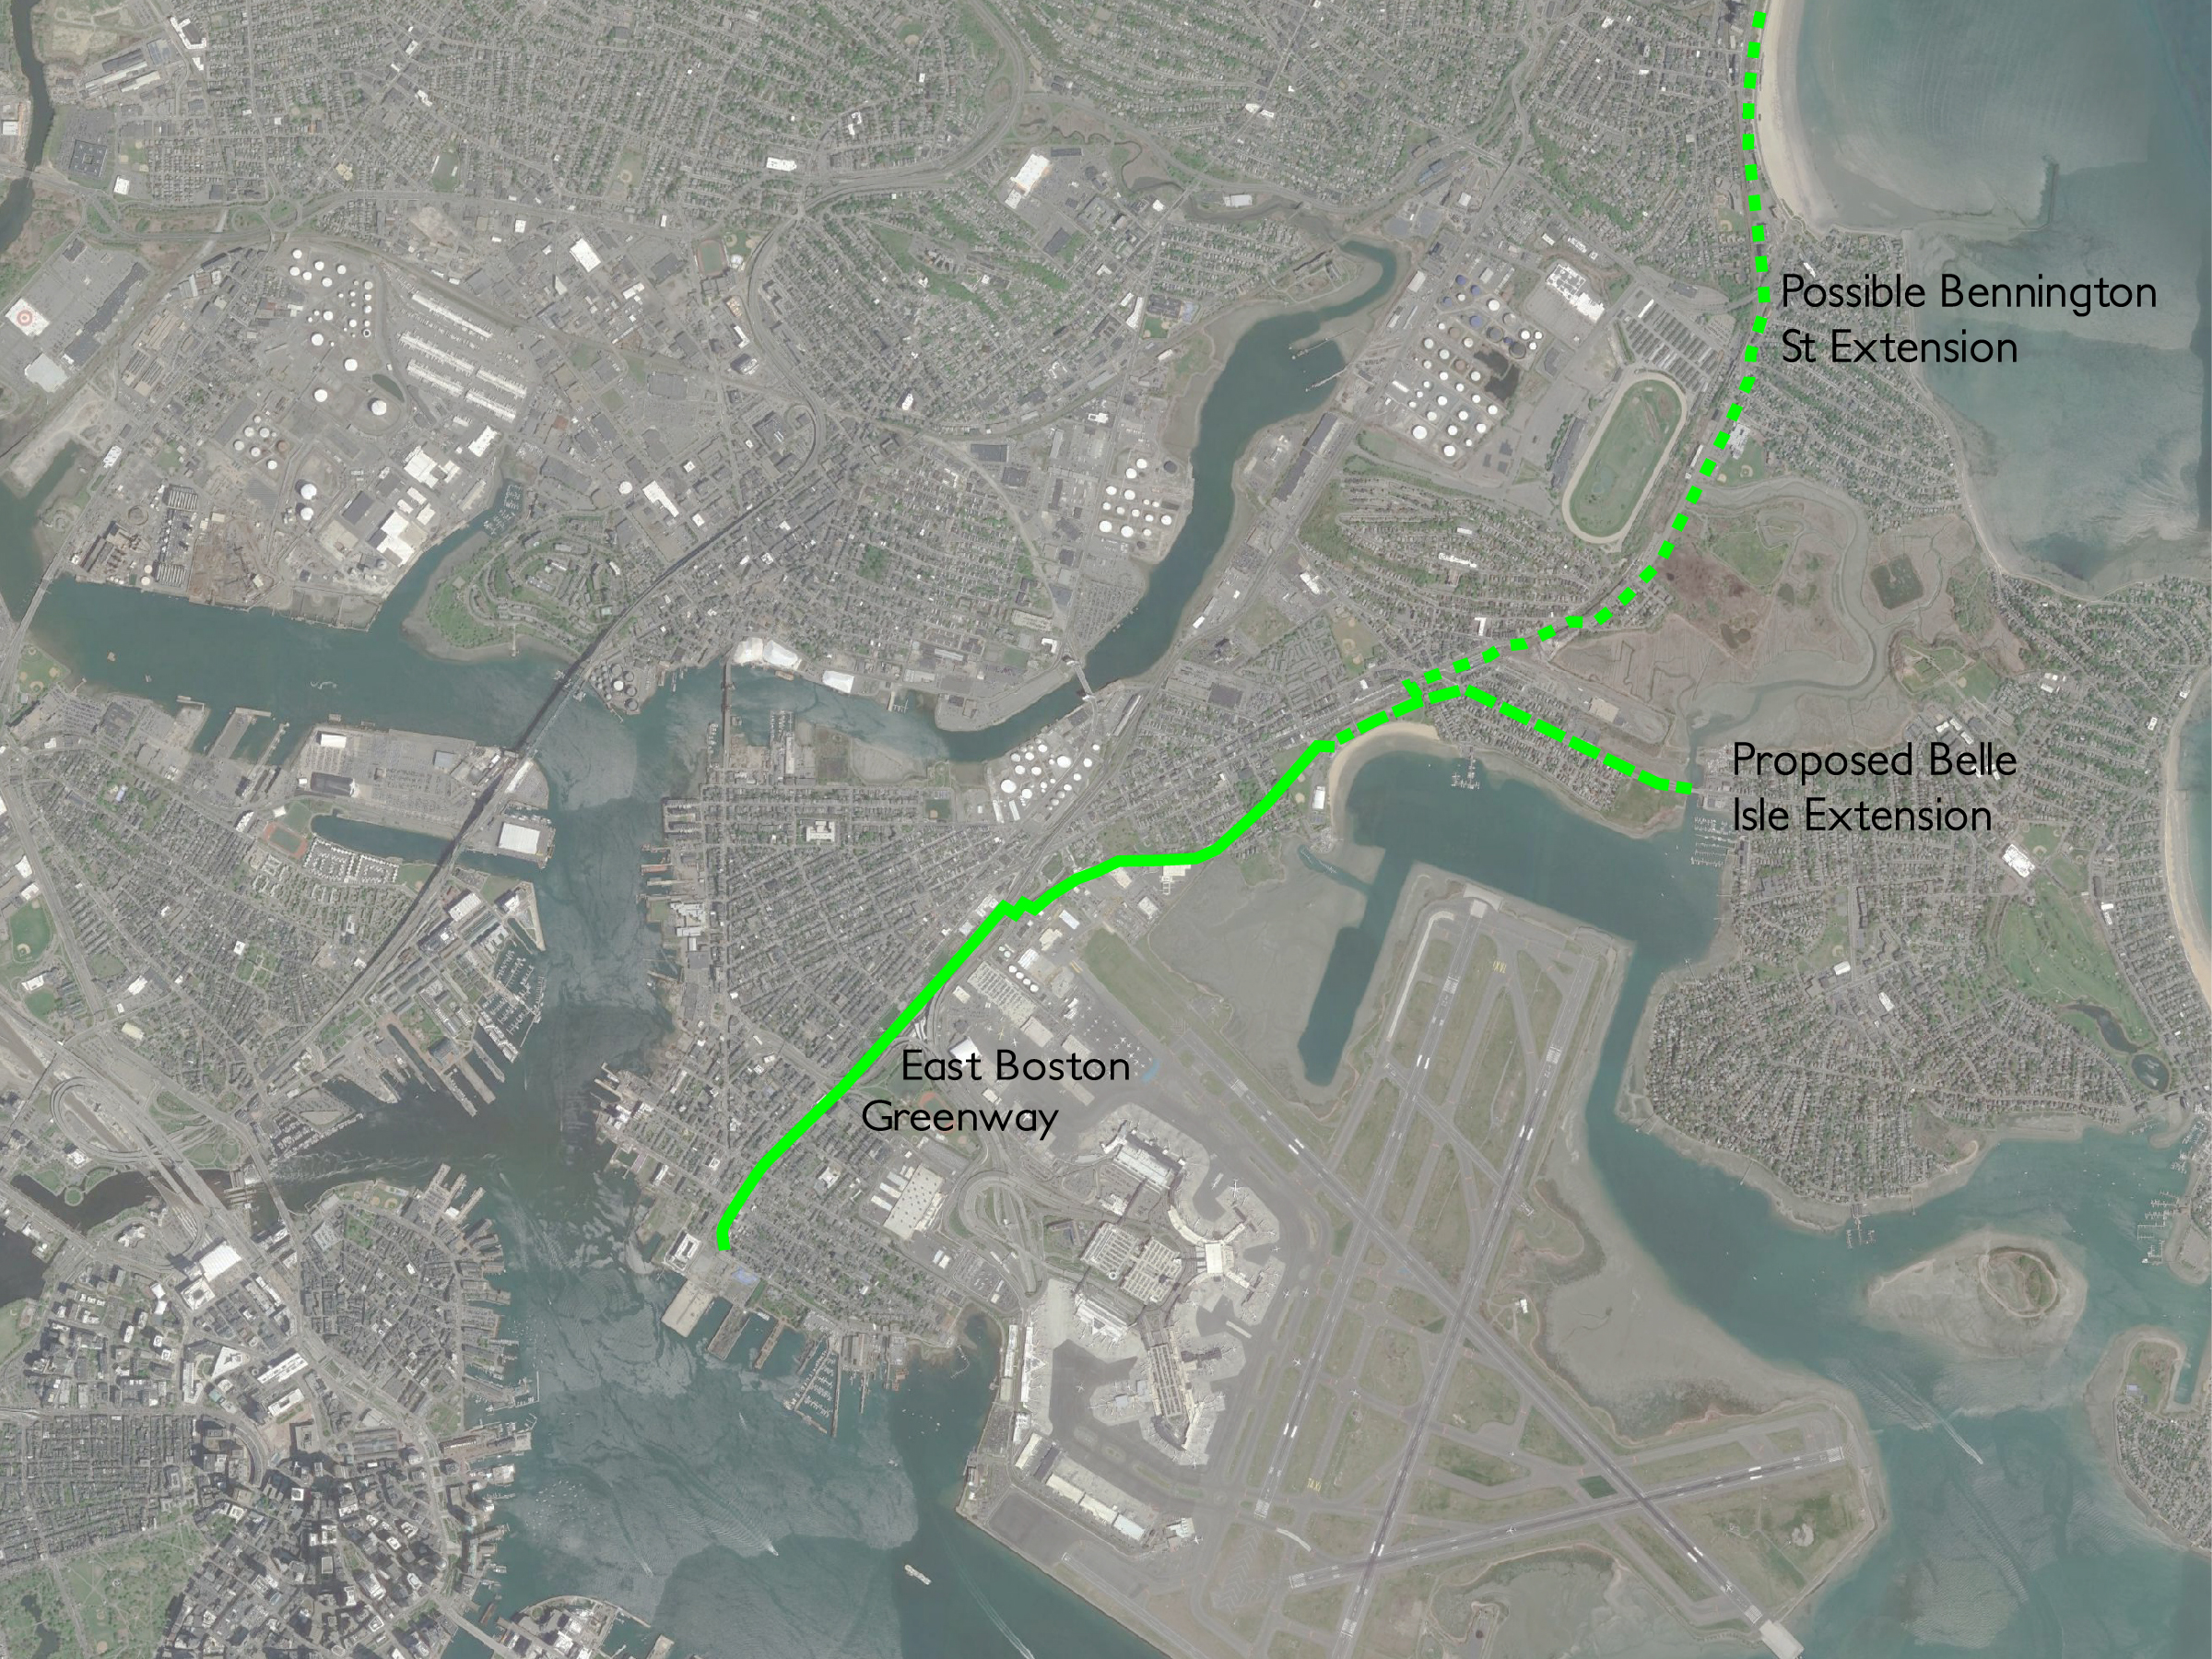 East_Boston_Greenway_Map-01.jpg